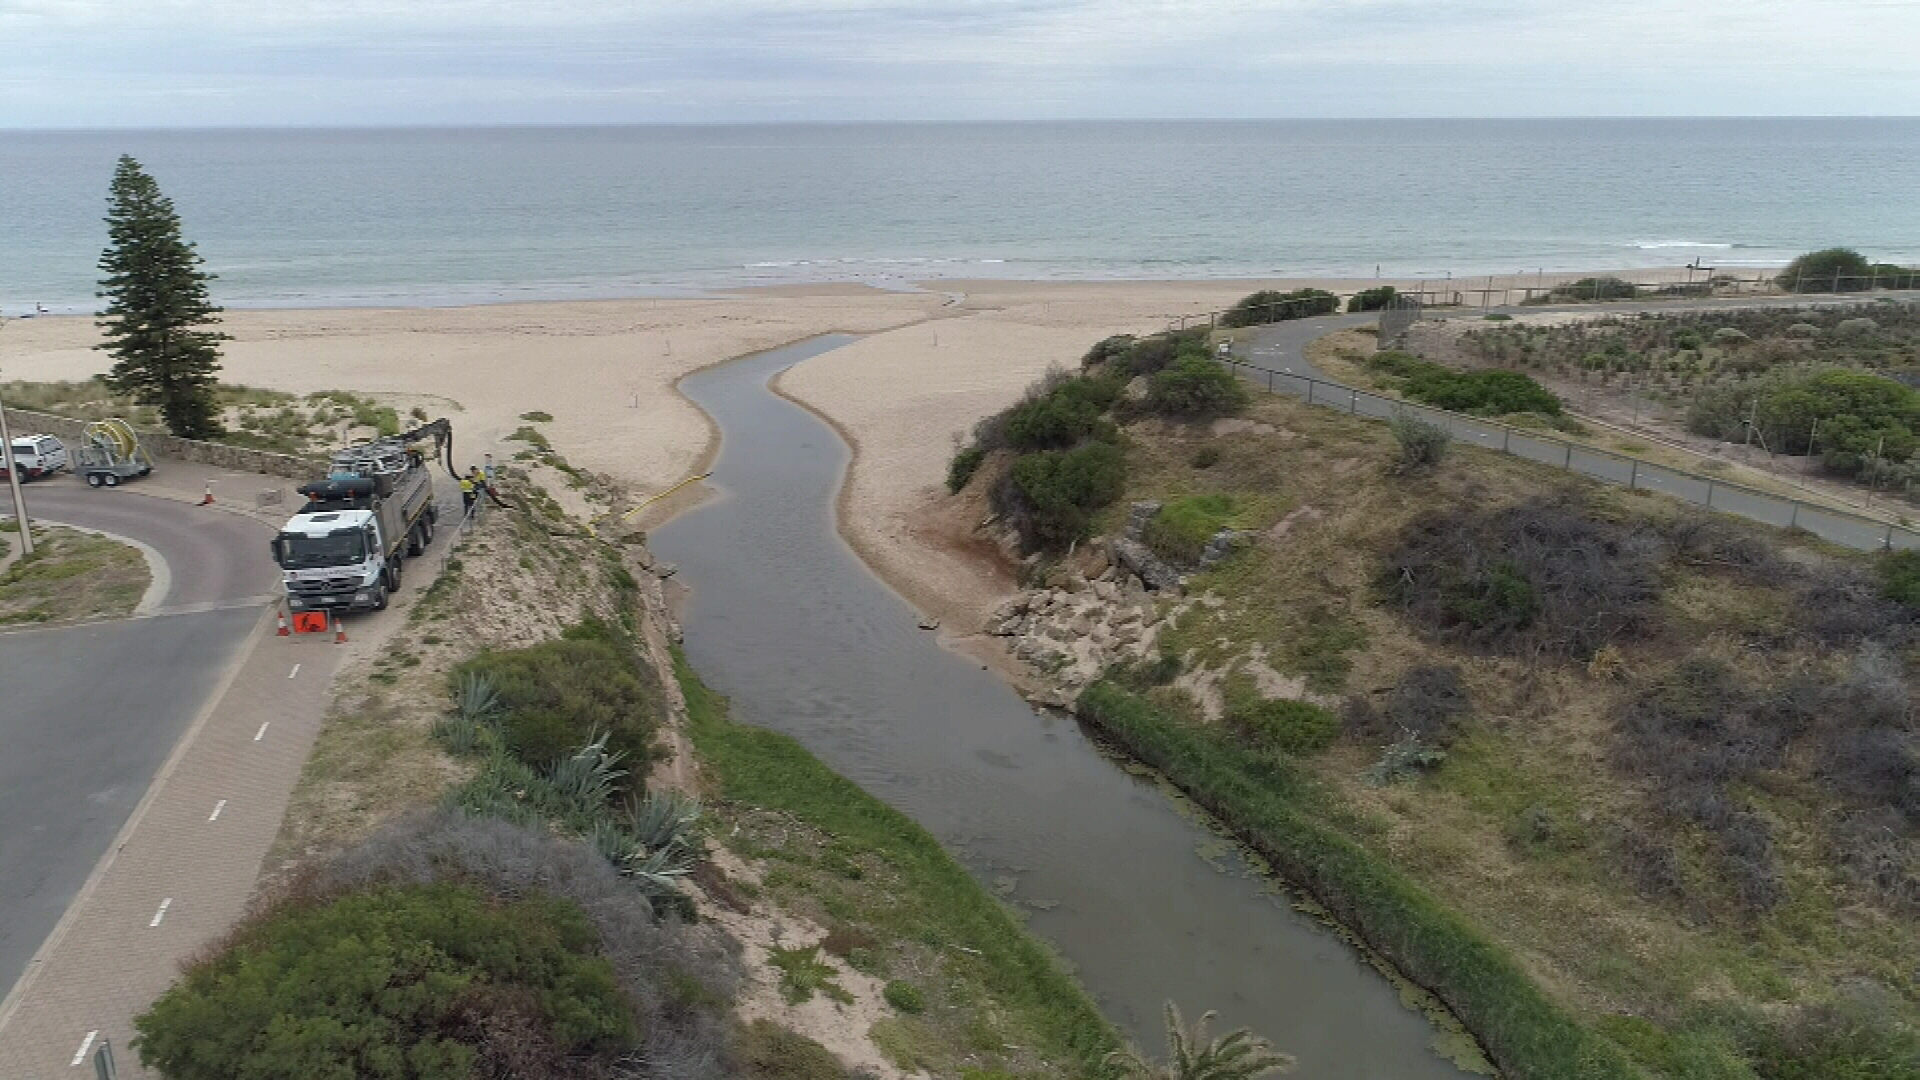 Adelaide beach closed over sewage spill